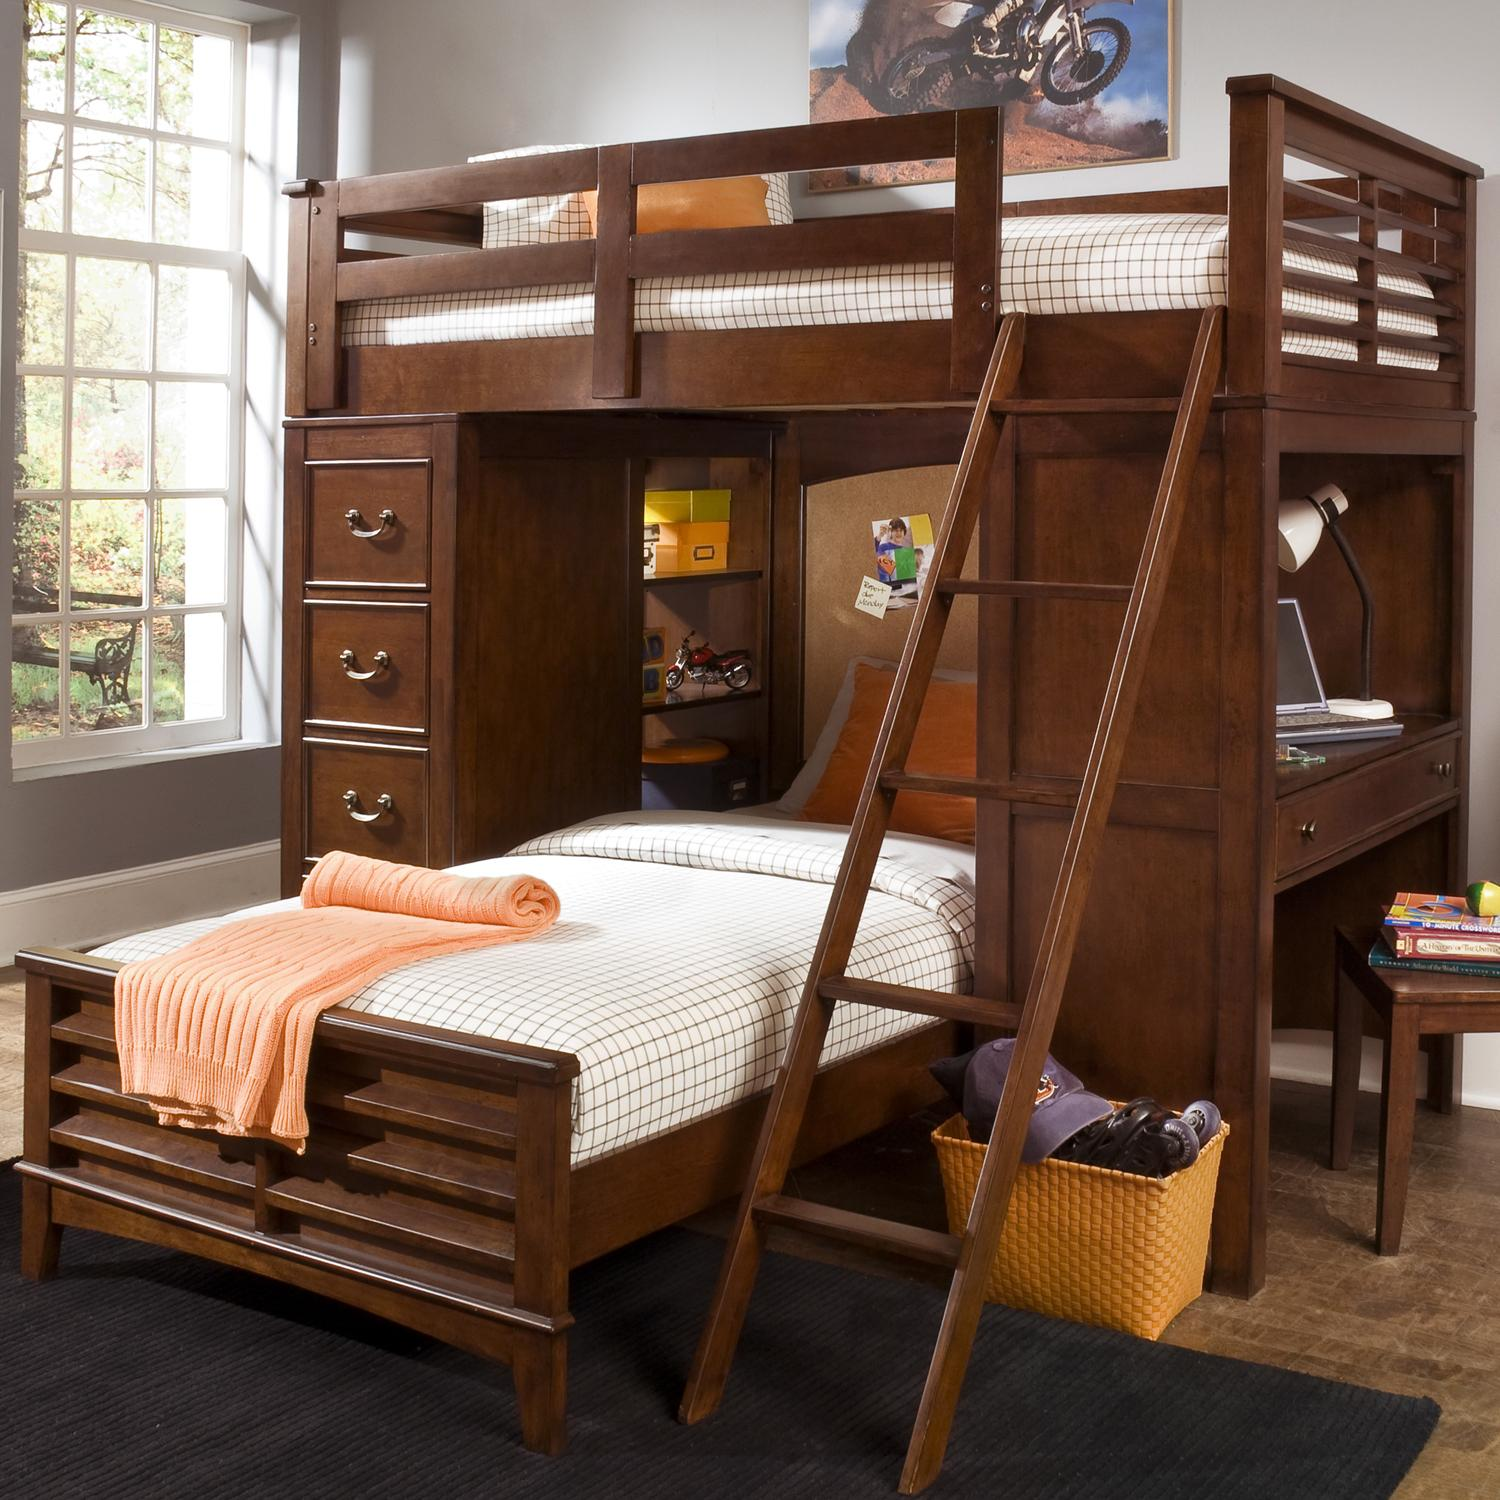 Beds And Beds Chelsea Square Youth Twin Loft Bed Unit With Built In Desk And Chest By Liberty Furniture At Royal Furniture